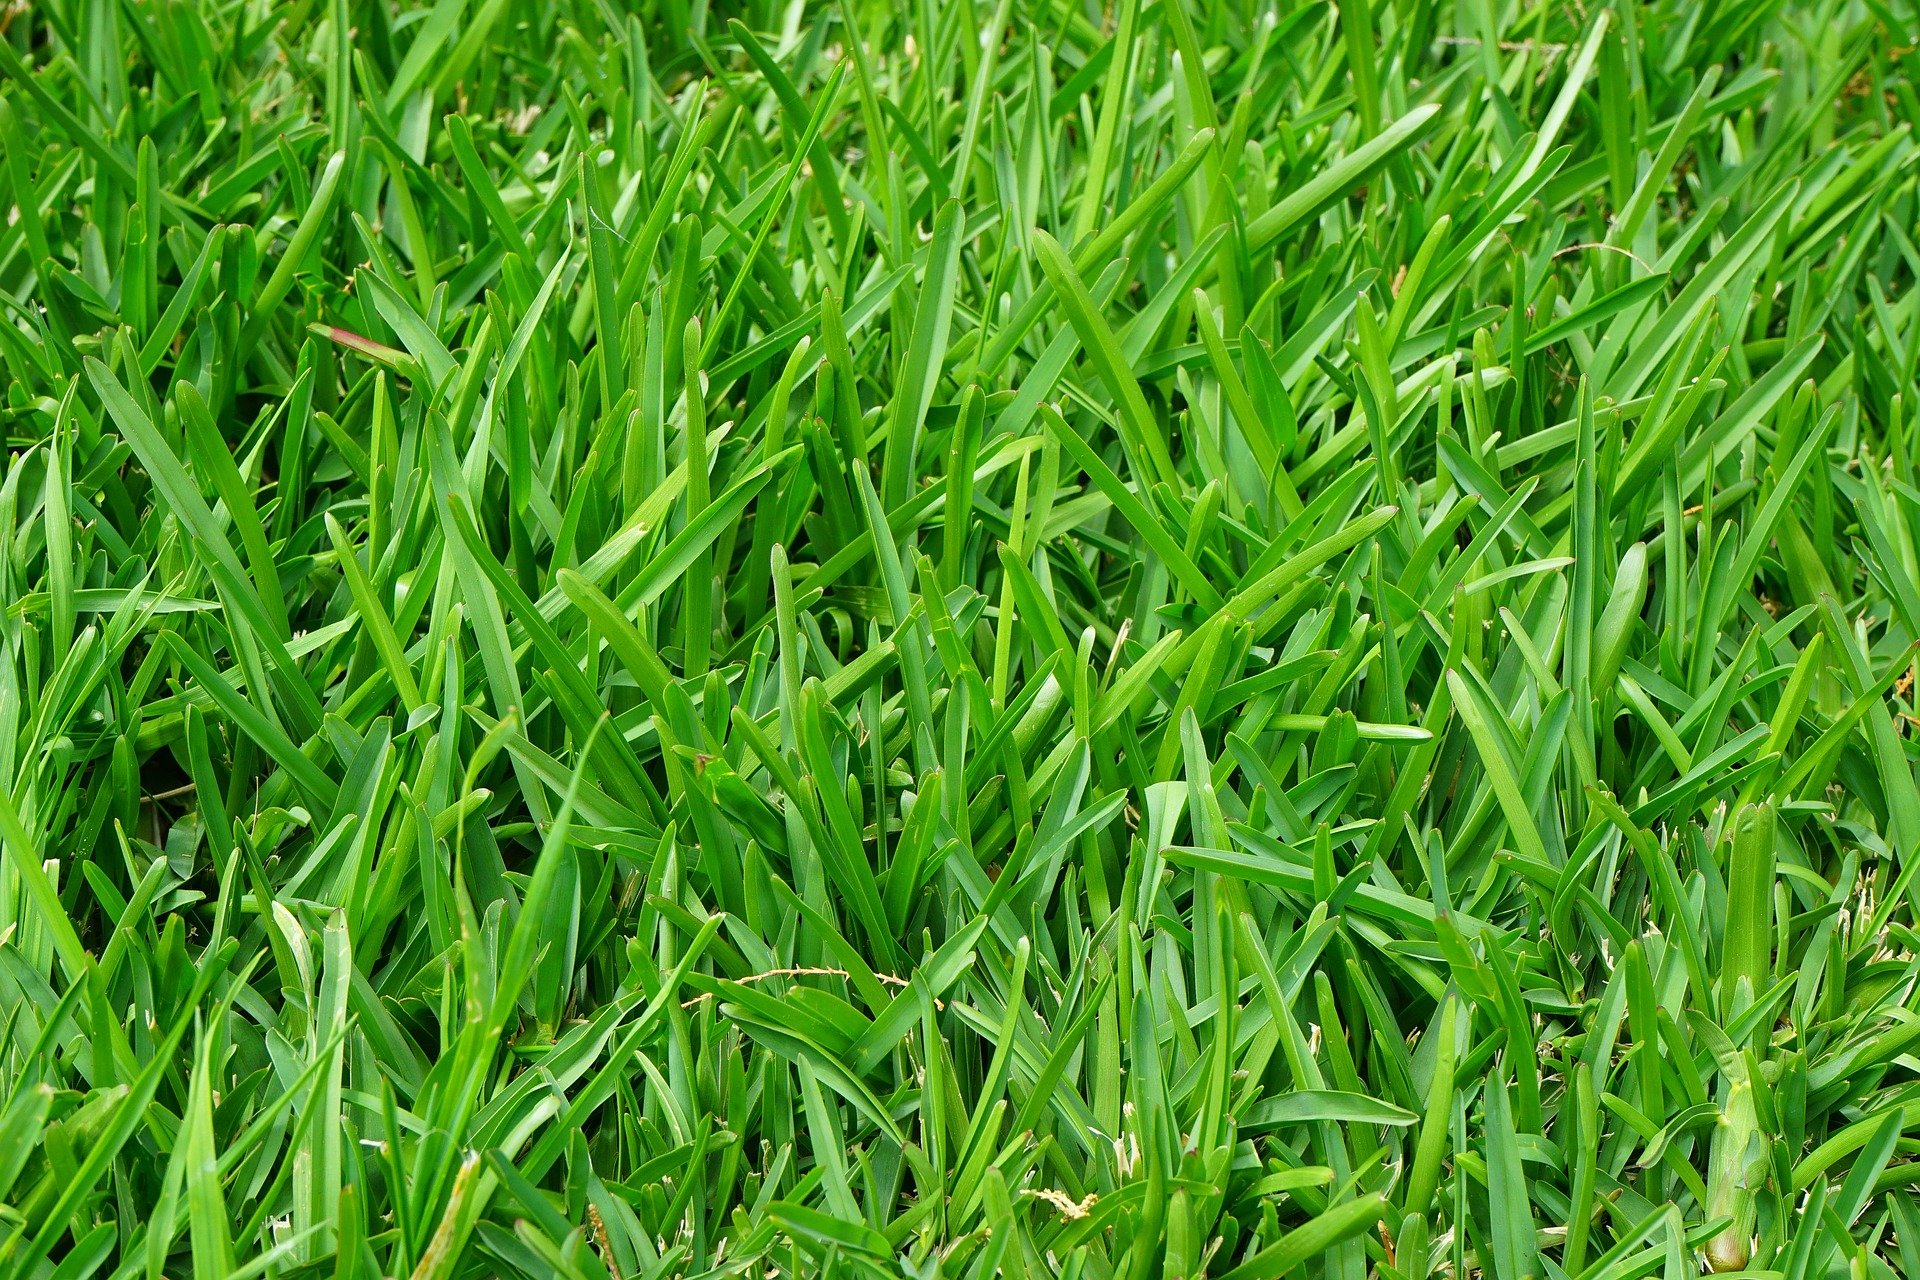 4 Grass Types For Lawns in Baltimore, MD - Lawnstarter